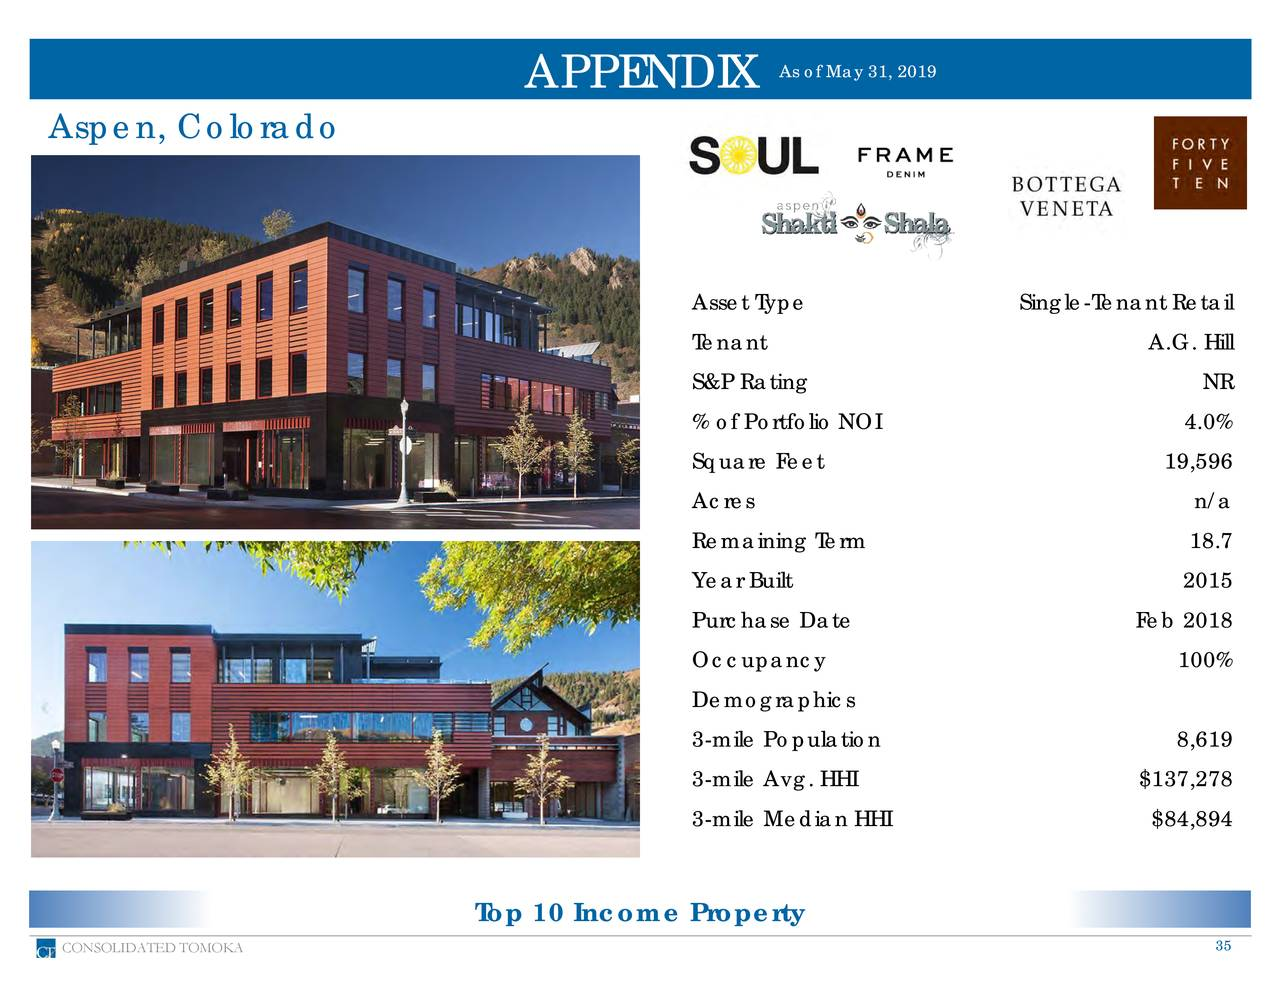 APPENDIX Aspen, Colorado Asset Type Single-Tenant Retail Tenant A.G. Hill S&P Rating NR % of Portfolio NOI 4.0% Square Feet 19,596 Acres n/a Remaining Term 18.7 Year Built 2015 Purchase Date Feb 2018 Occupancy 100% Demographics 3-mile Population 8,619 3-mile Avg. HHI $137,278 3-mile Median HHI $84,894 Top 10 Income Property CONSOLIDATED TOMOKA 35